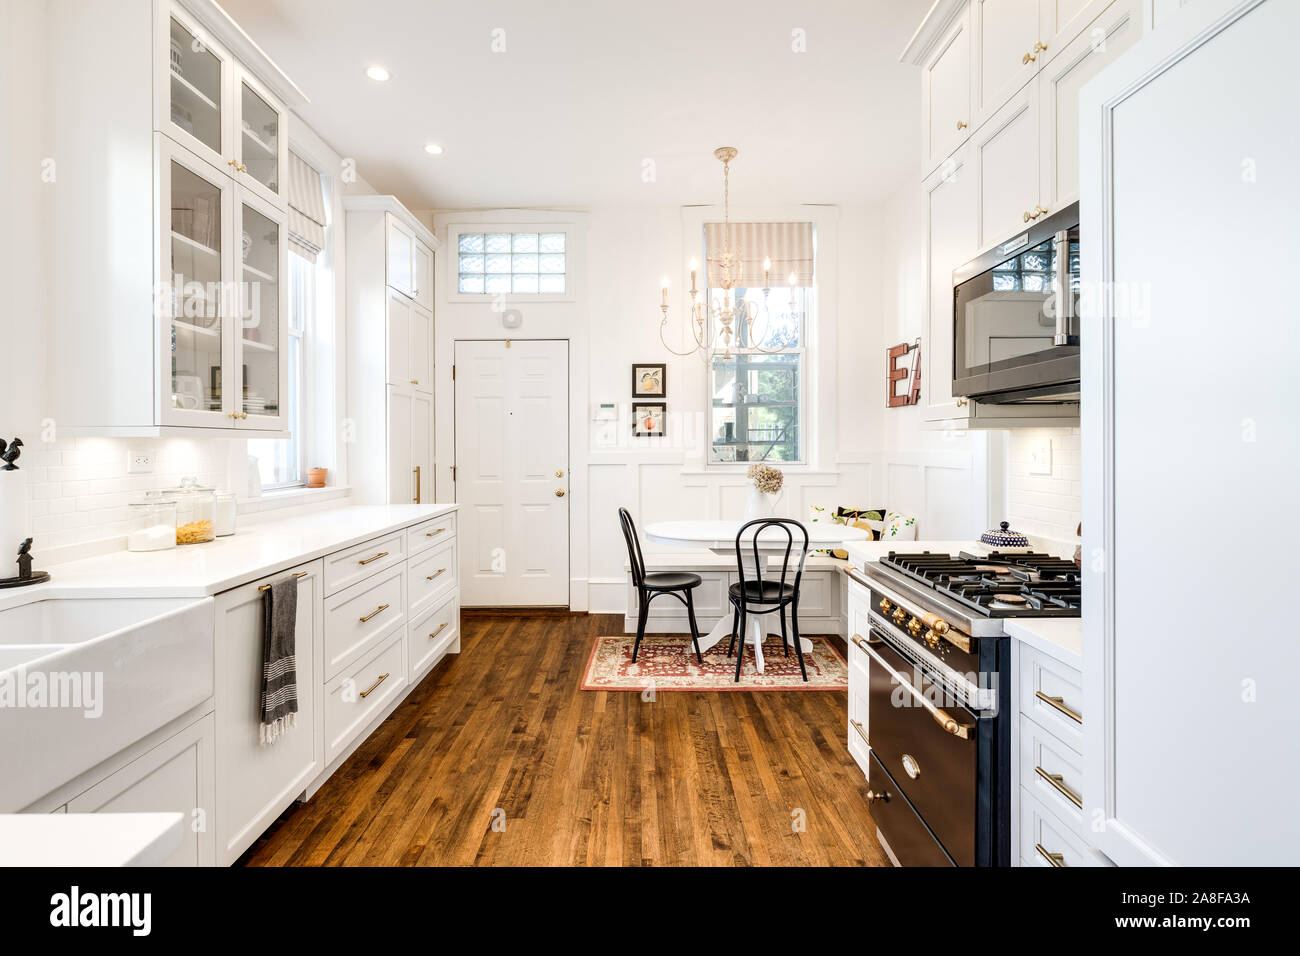 A white kitchen with a small dining room area in the corner and